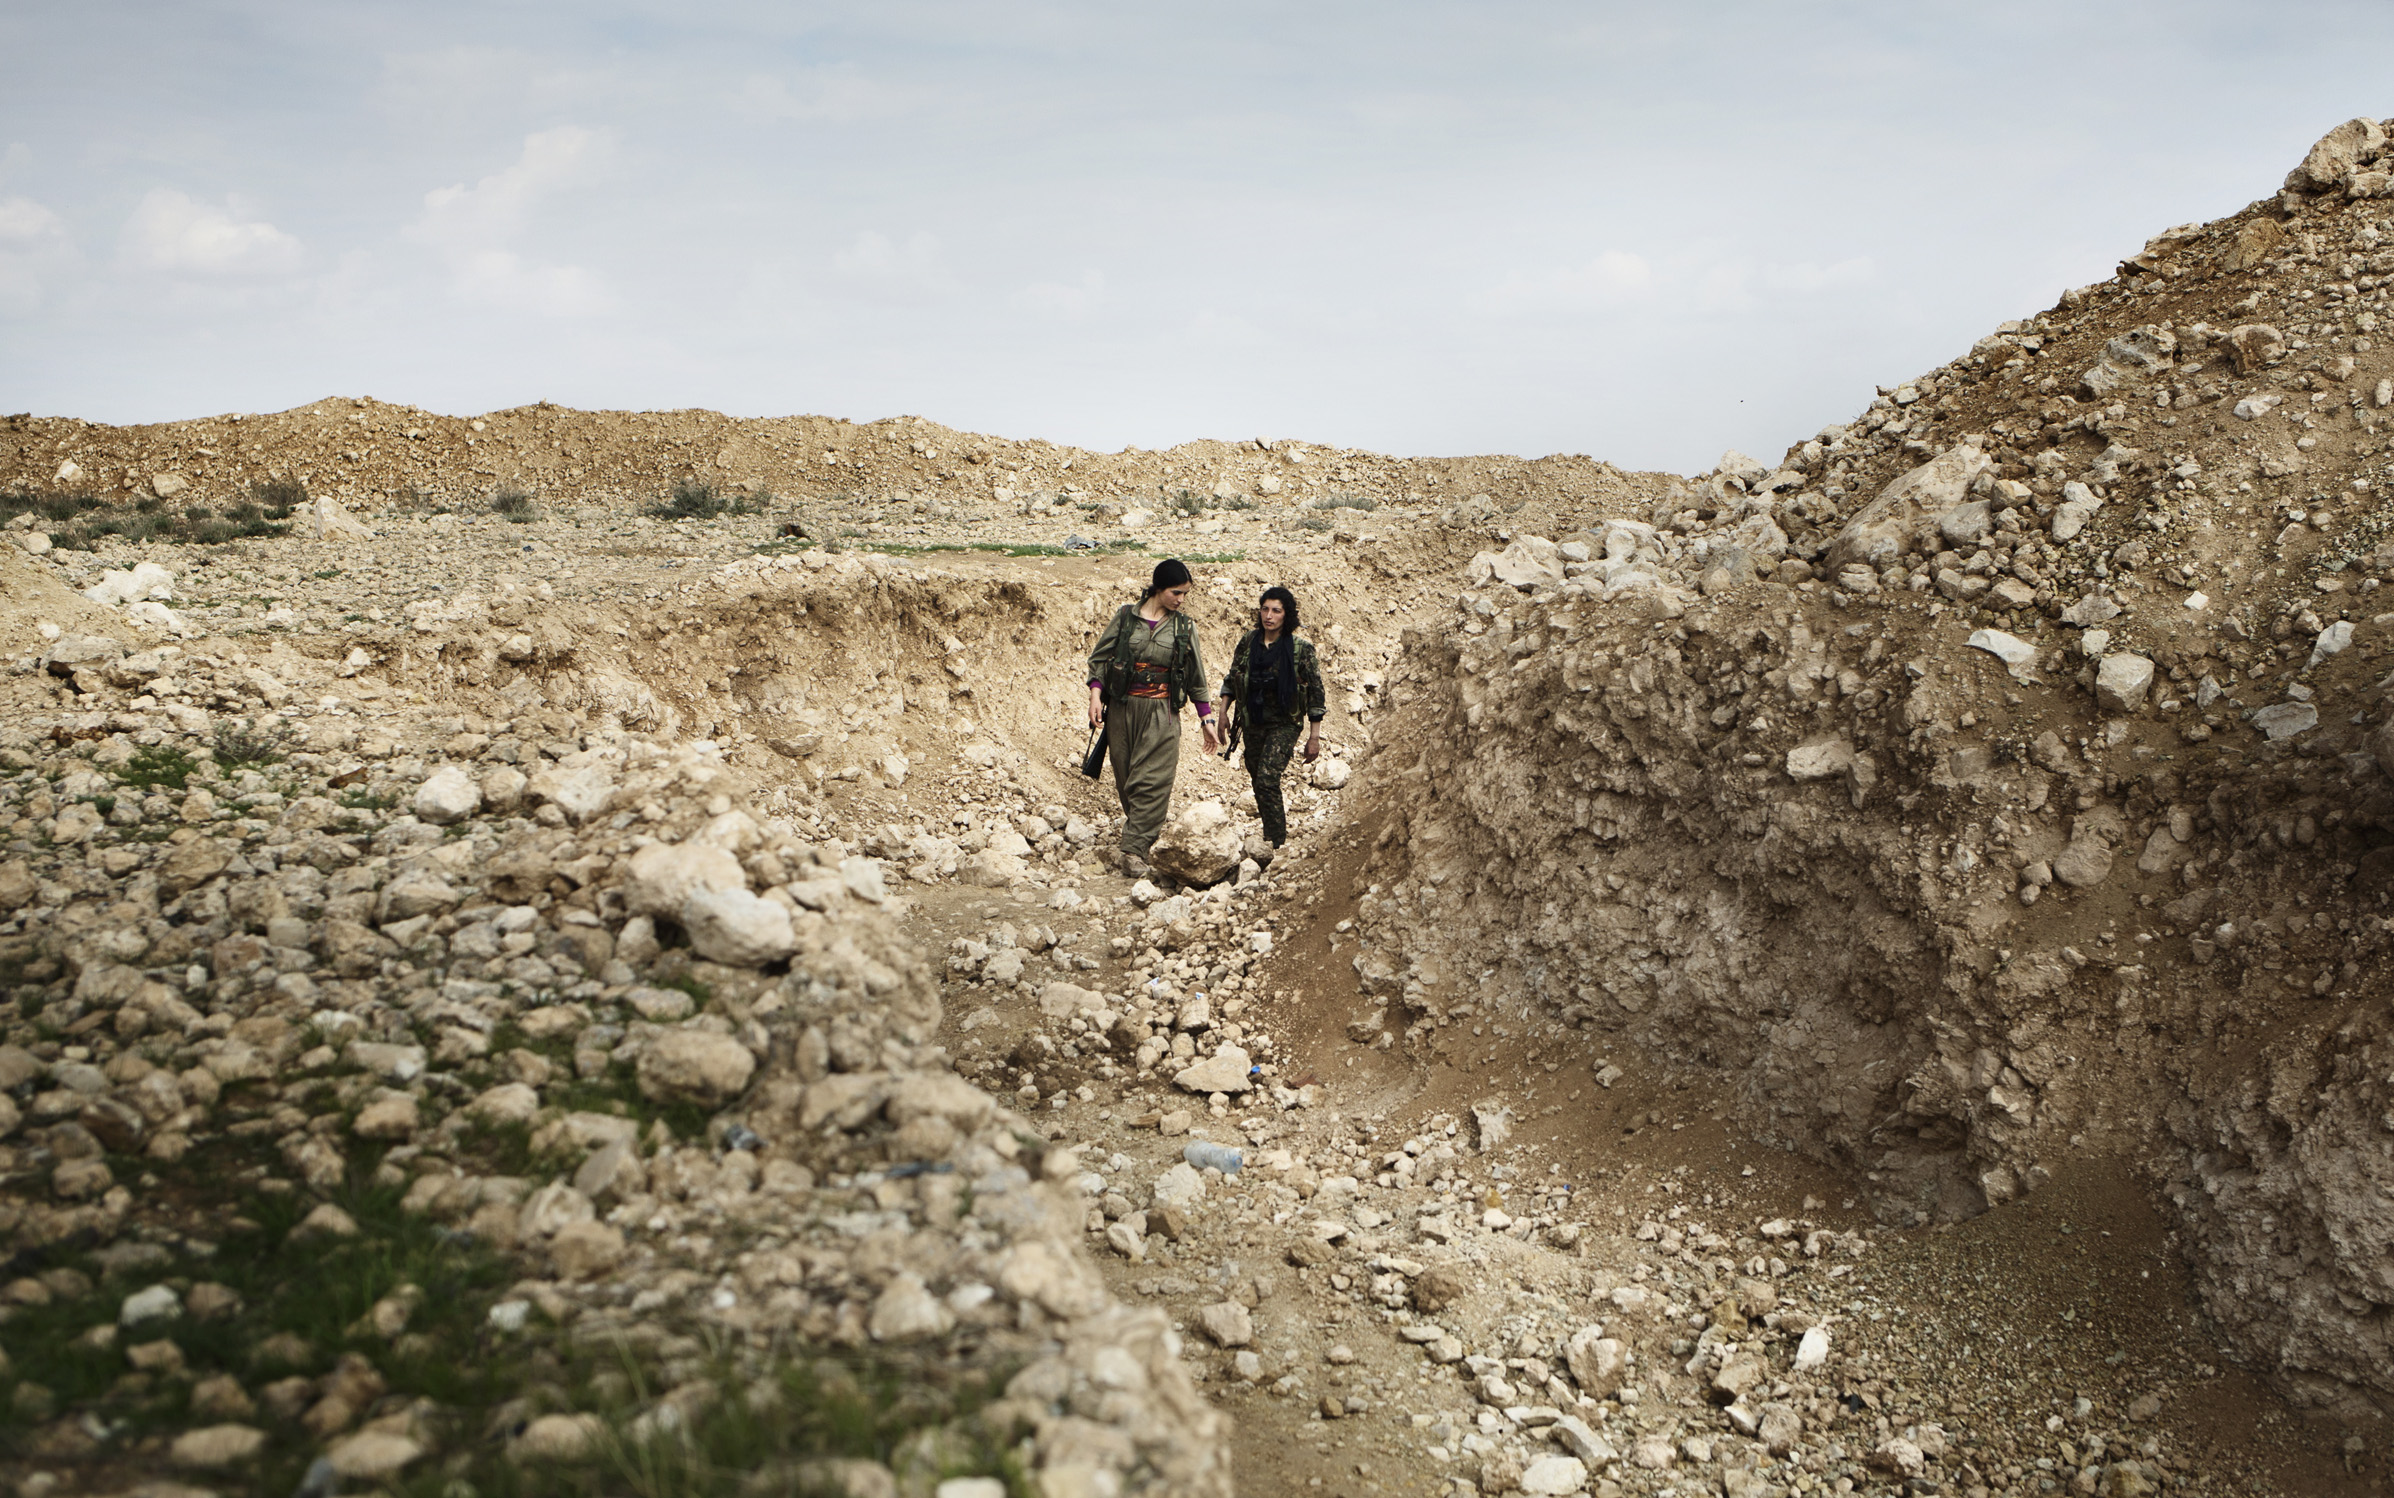 SINJAR, KURDISTAN, IRAQ- FEBRUARY, 2016: Commandante Gulchin et Norouz (21) se déplacent dans les tranchées creusées tout autour de leur base. Leur poste se trouve à 1 km seulment des positions enemies de Daech. .(picture by Veronique de Viguerie/ Reportage by Getty Images )